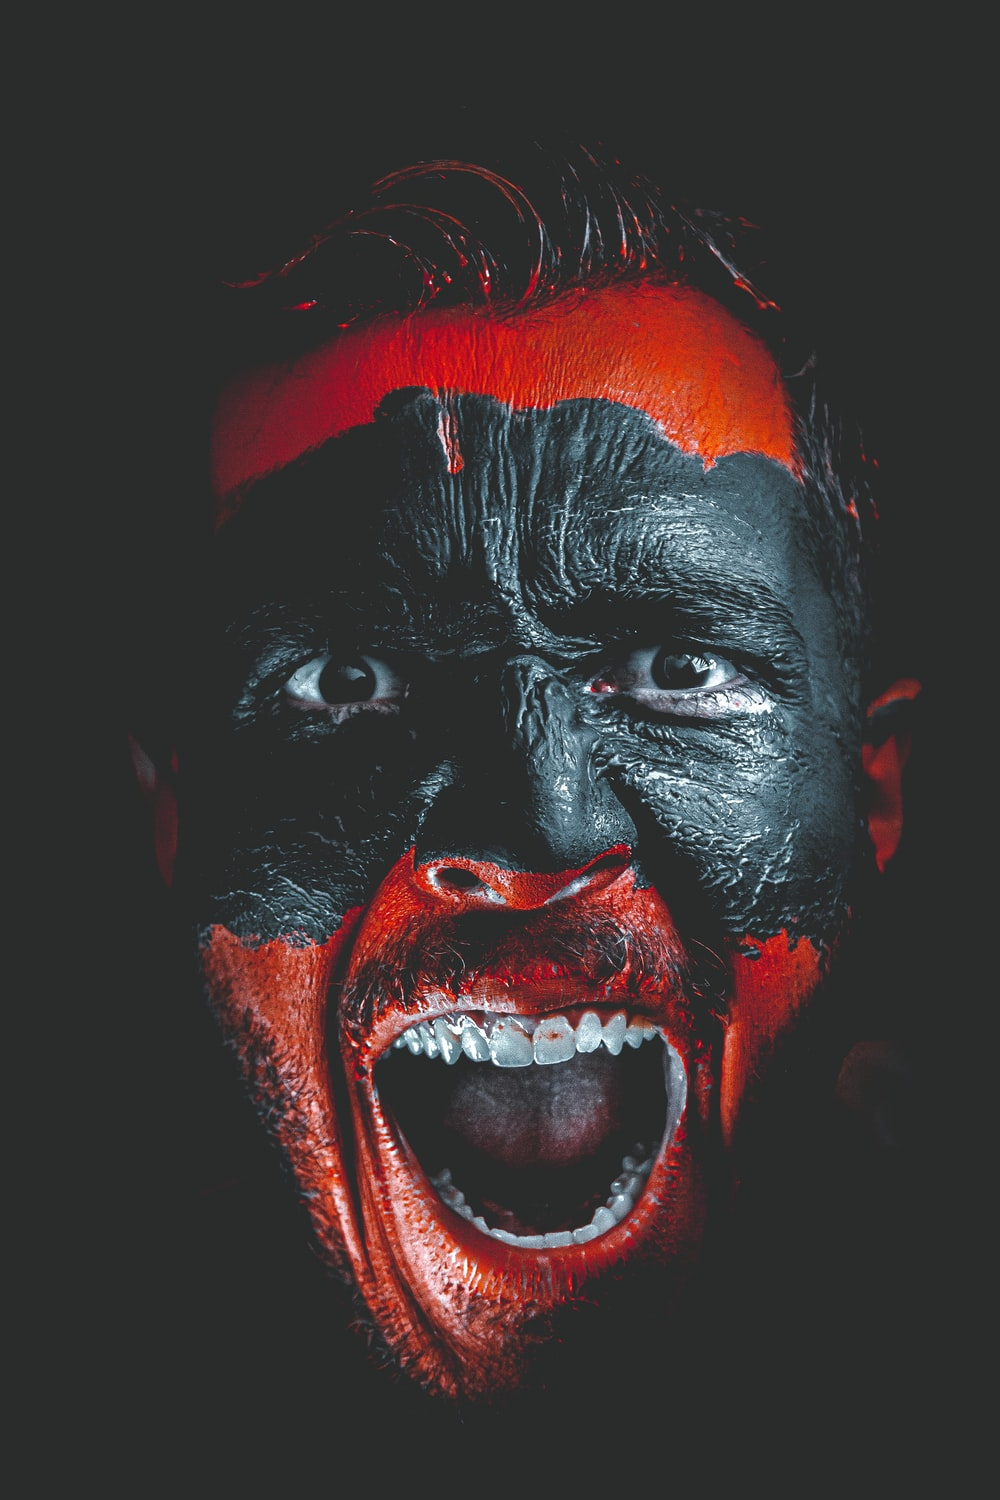 person with red and black face paint